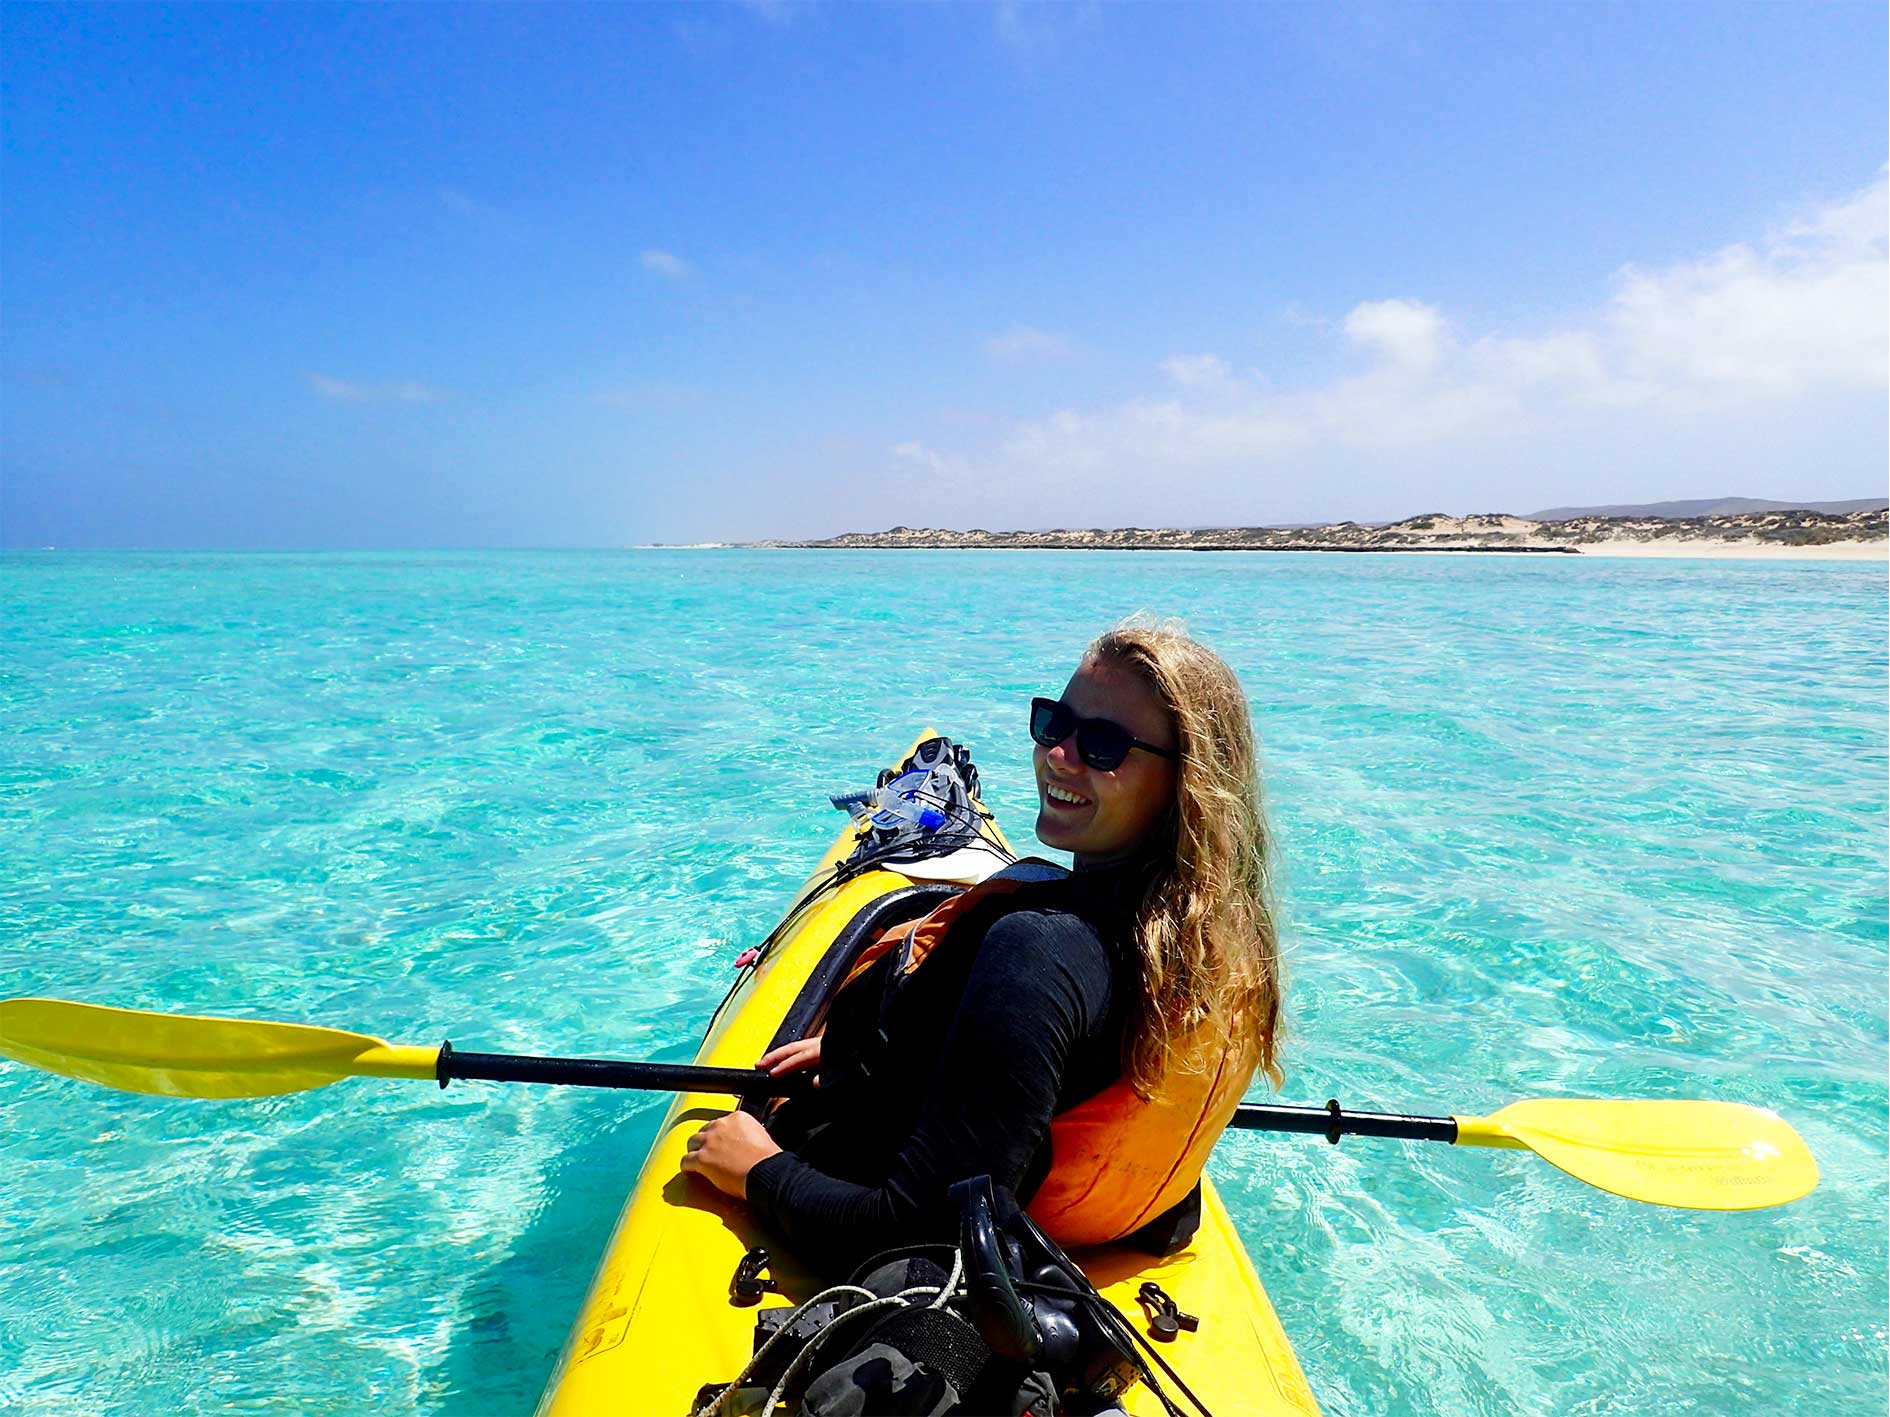 Lagoon Explorer, sea kayak tour, sea kayak, snorkel, eco tour, Ningaloo Reef, Exmouth, Western Australia, full day tour, coral coast, Cape Range national Park, Exmouth Adventure Co